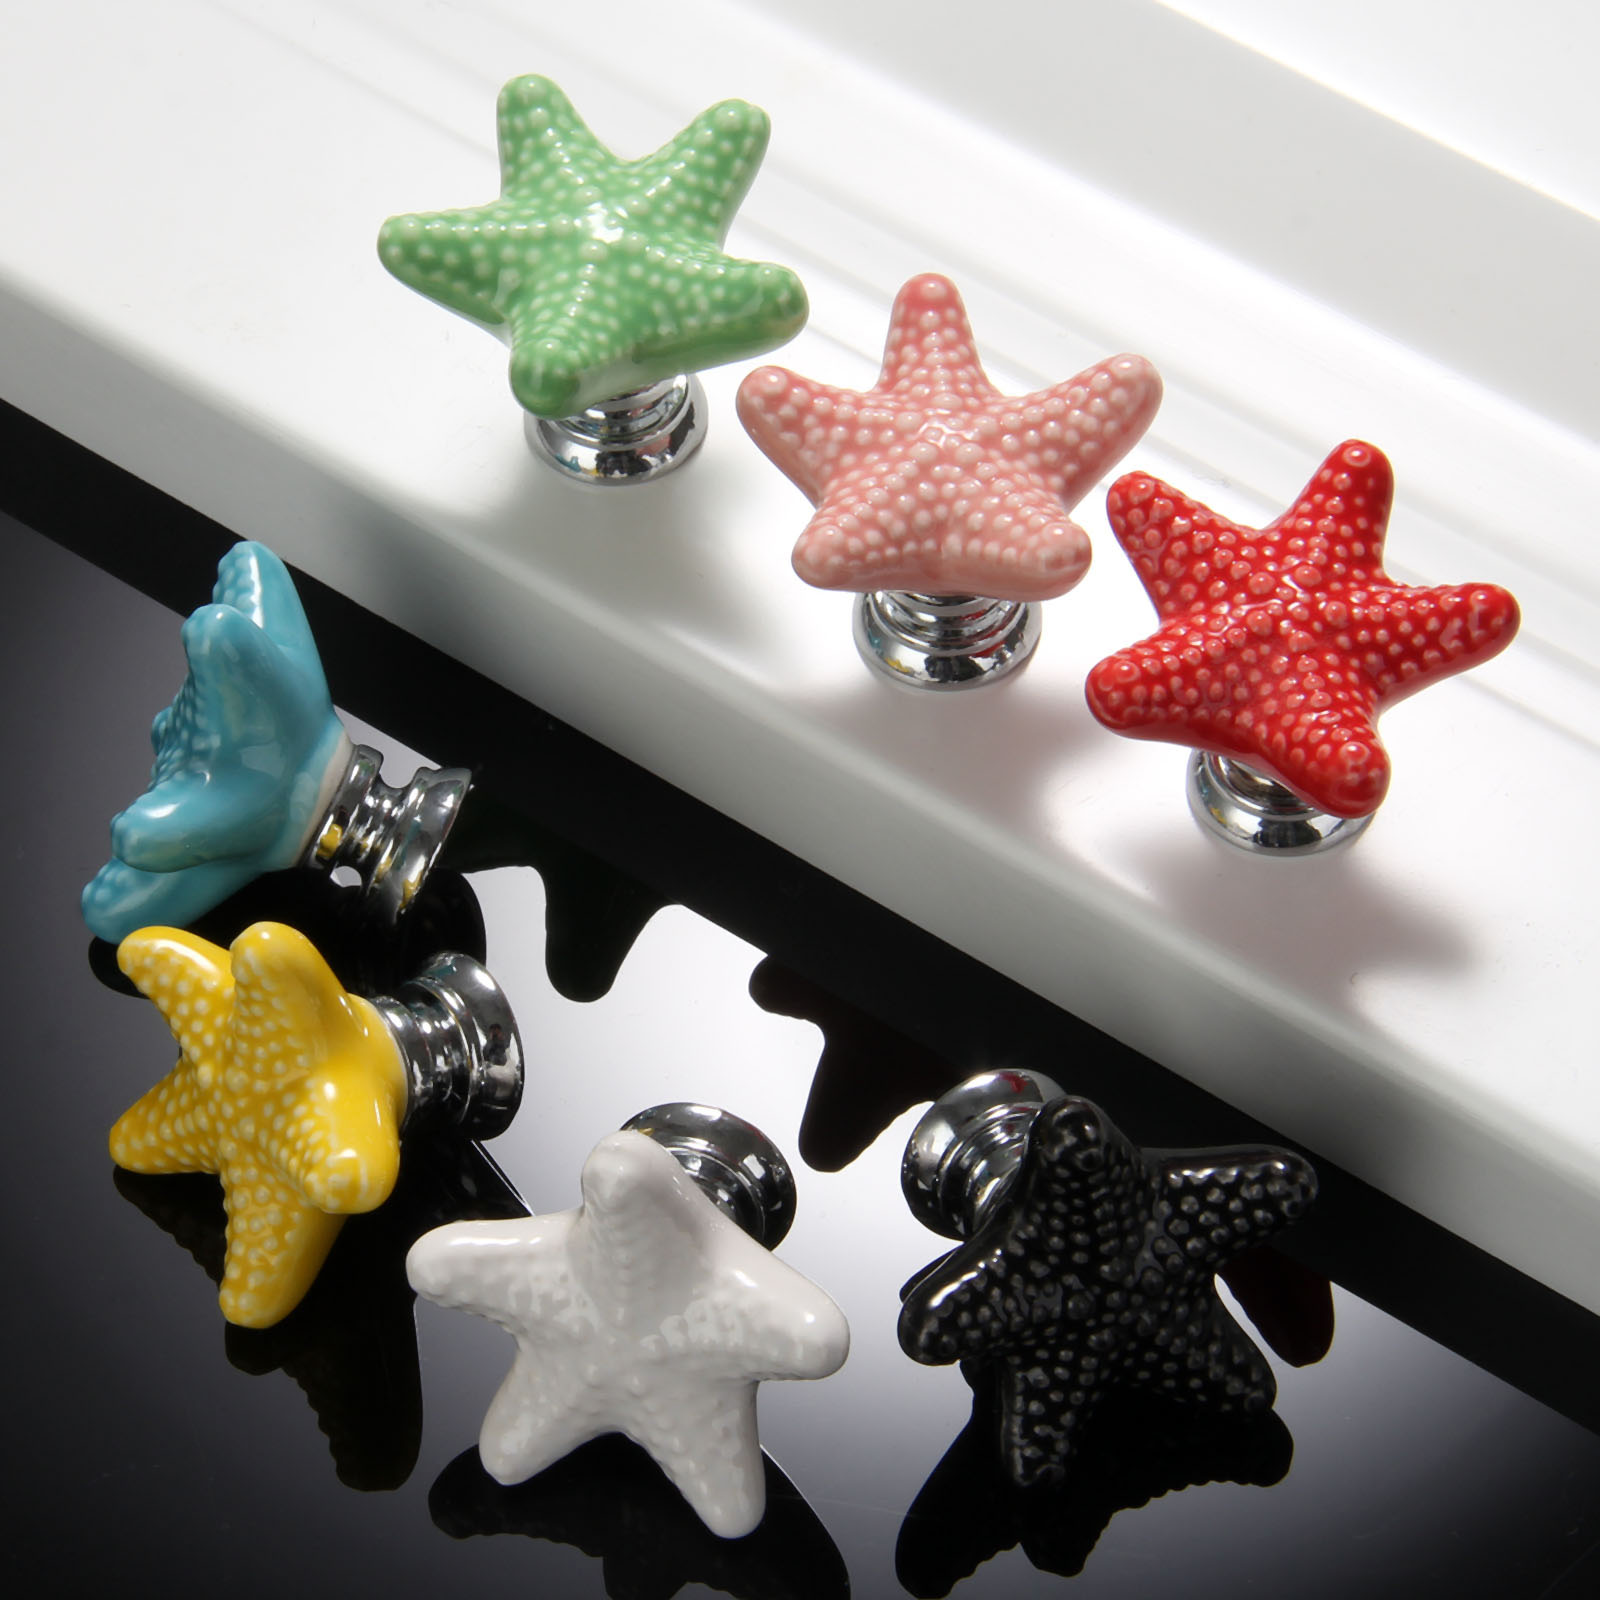 купить 7Pcs/lot Starfish Cabinet Knobs and Handles Furniture Handles Ceramic Door Knob Cupboard Drawer Kitchen Pull Handle Home Decor онлайн